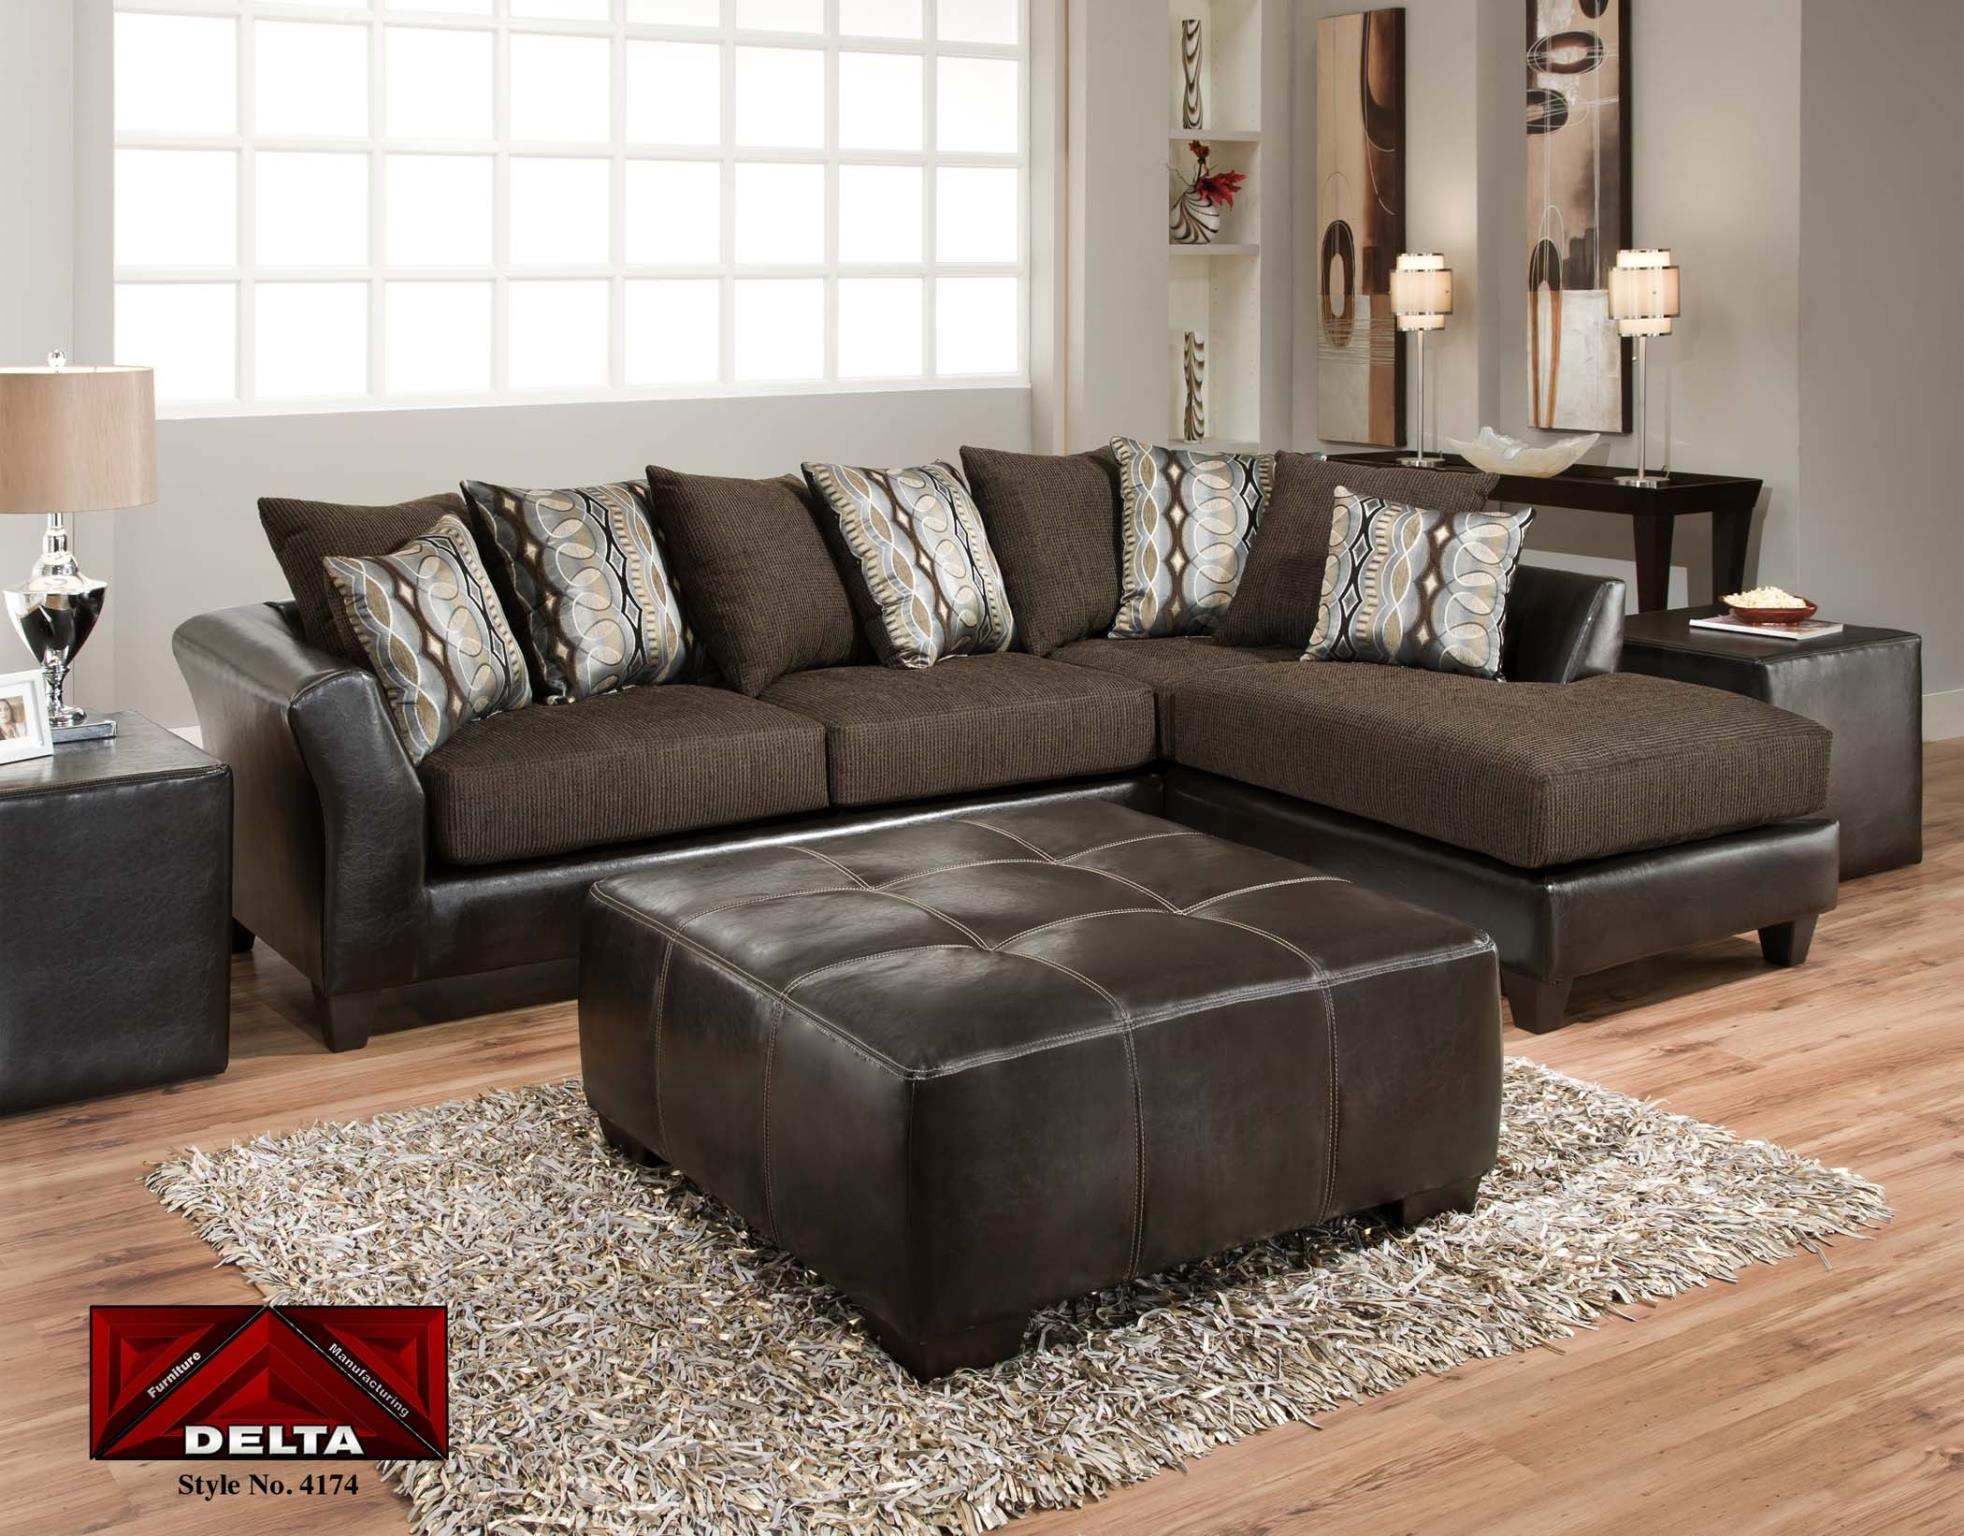 Sectionals : T Mart Furniture, Of Fort Worth, Texas Within Mansfield Graphite Velvet Sofa Chairs (Image 17 of 25)